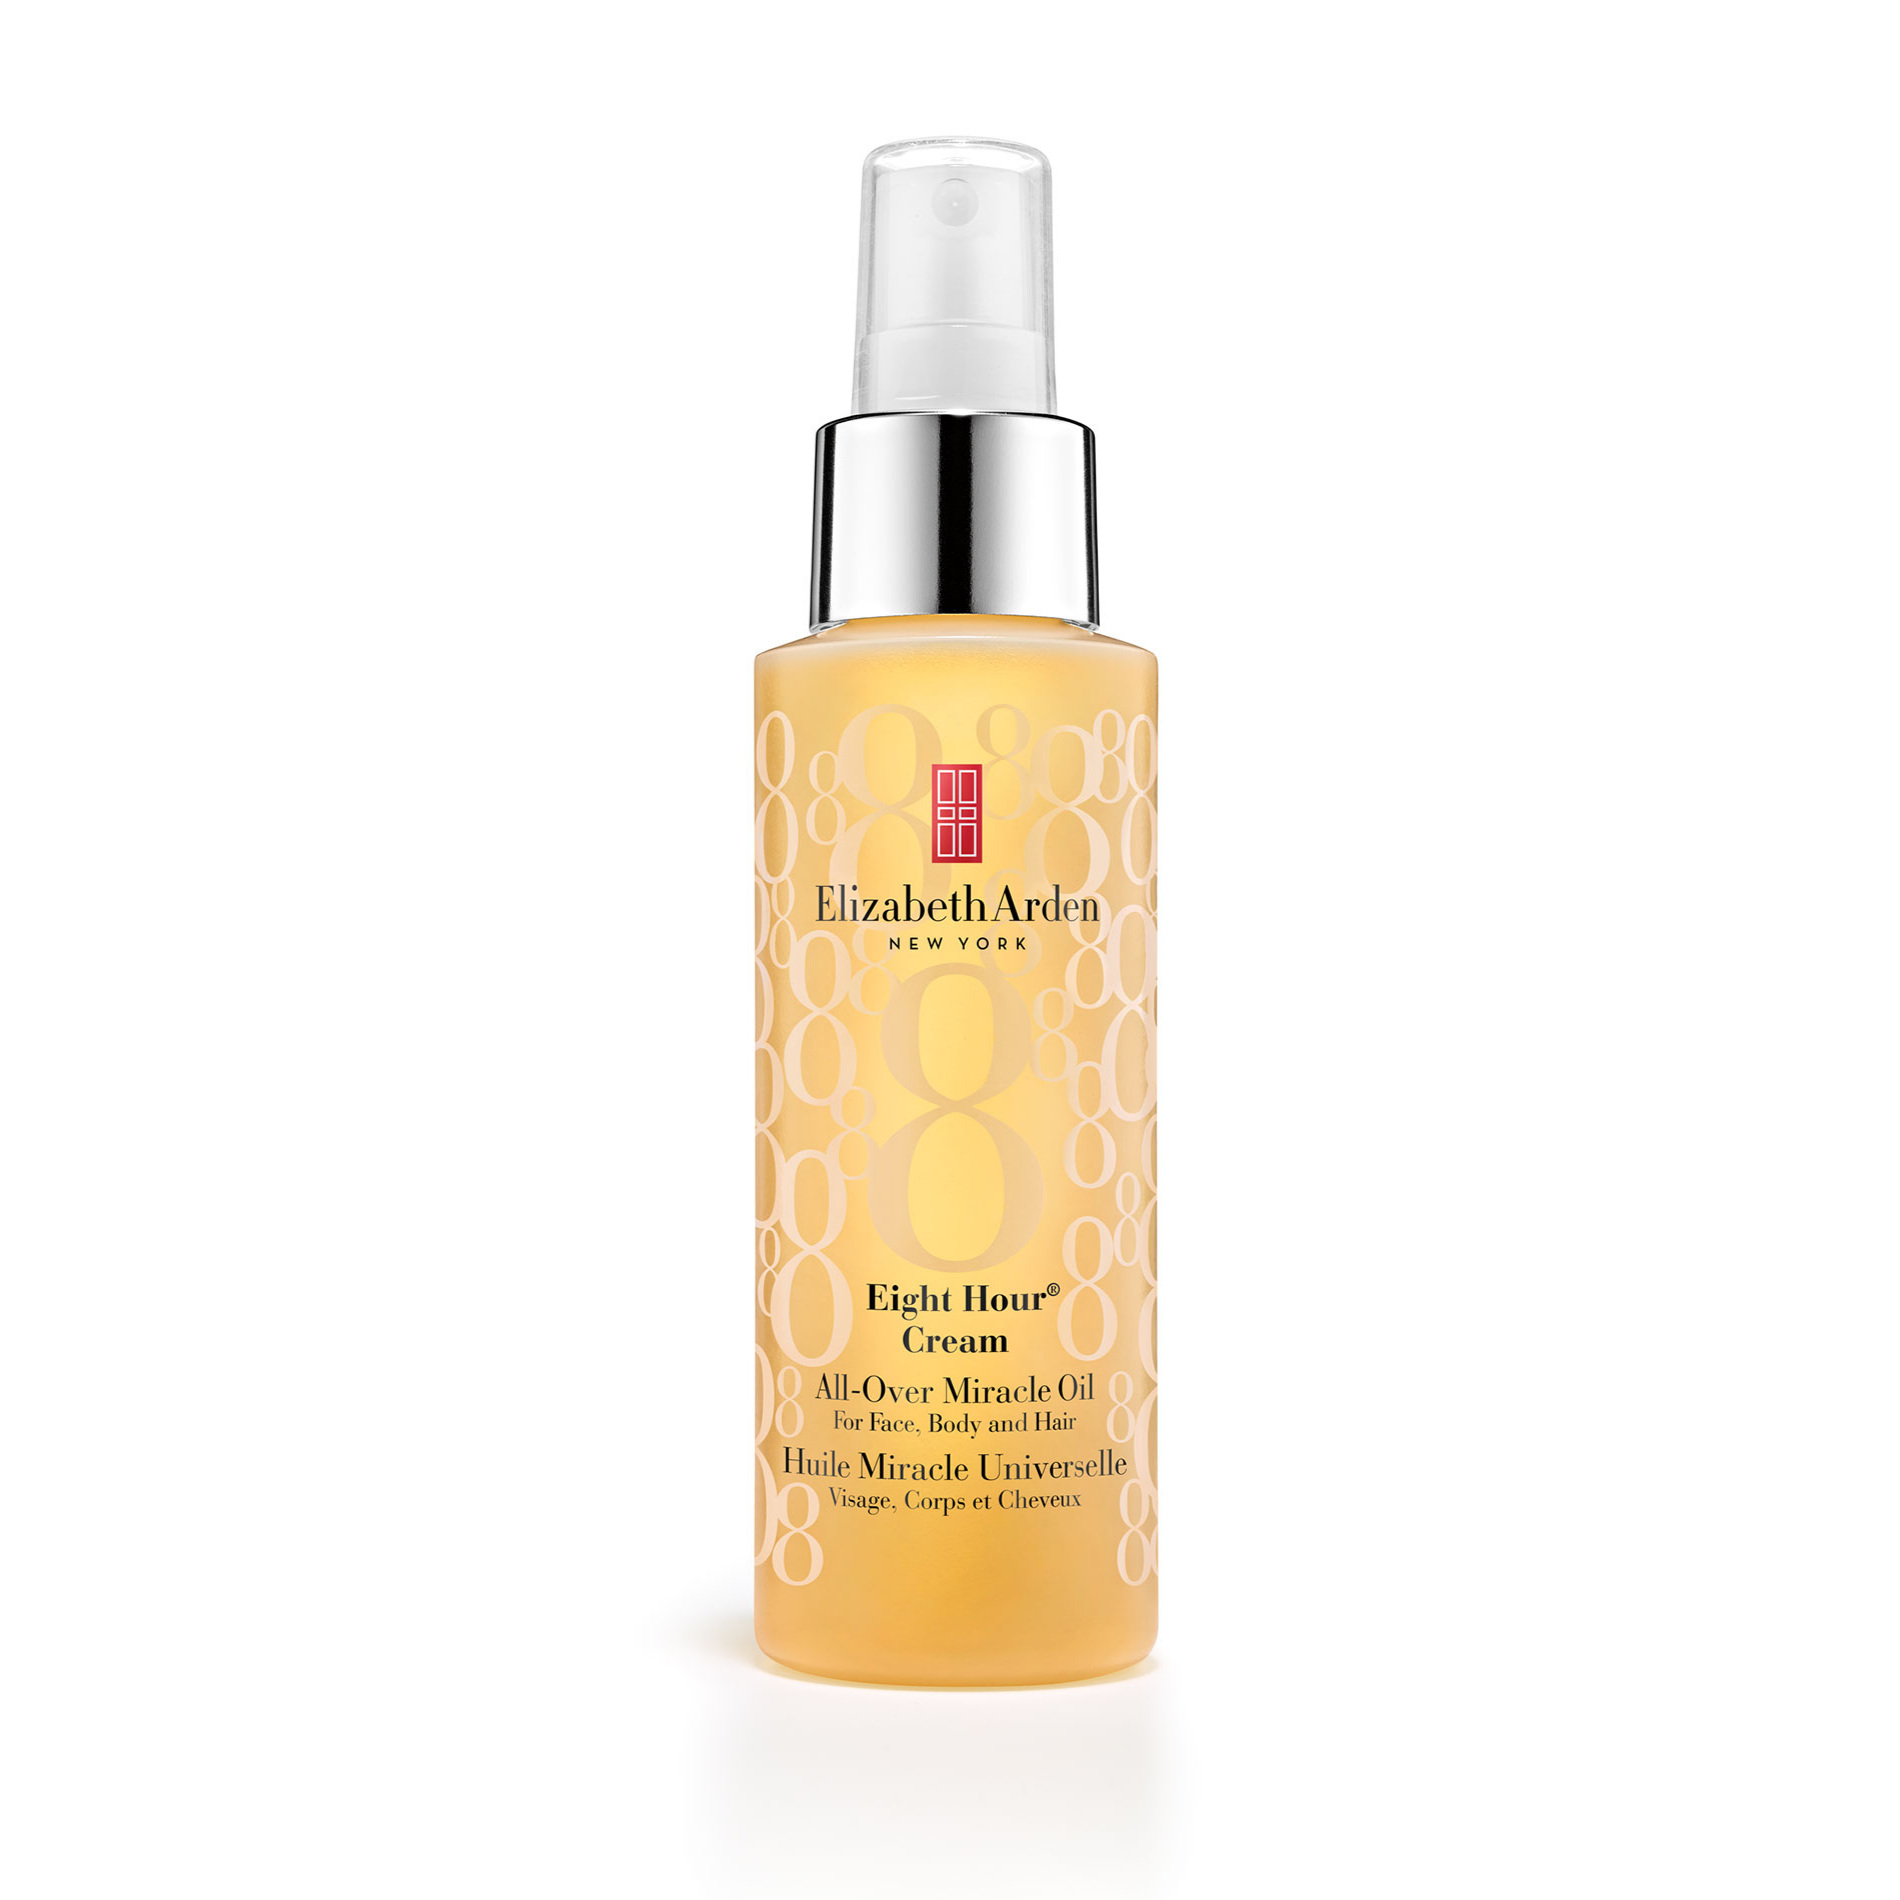 All-Over Miracle Oil